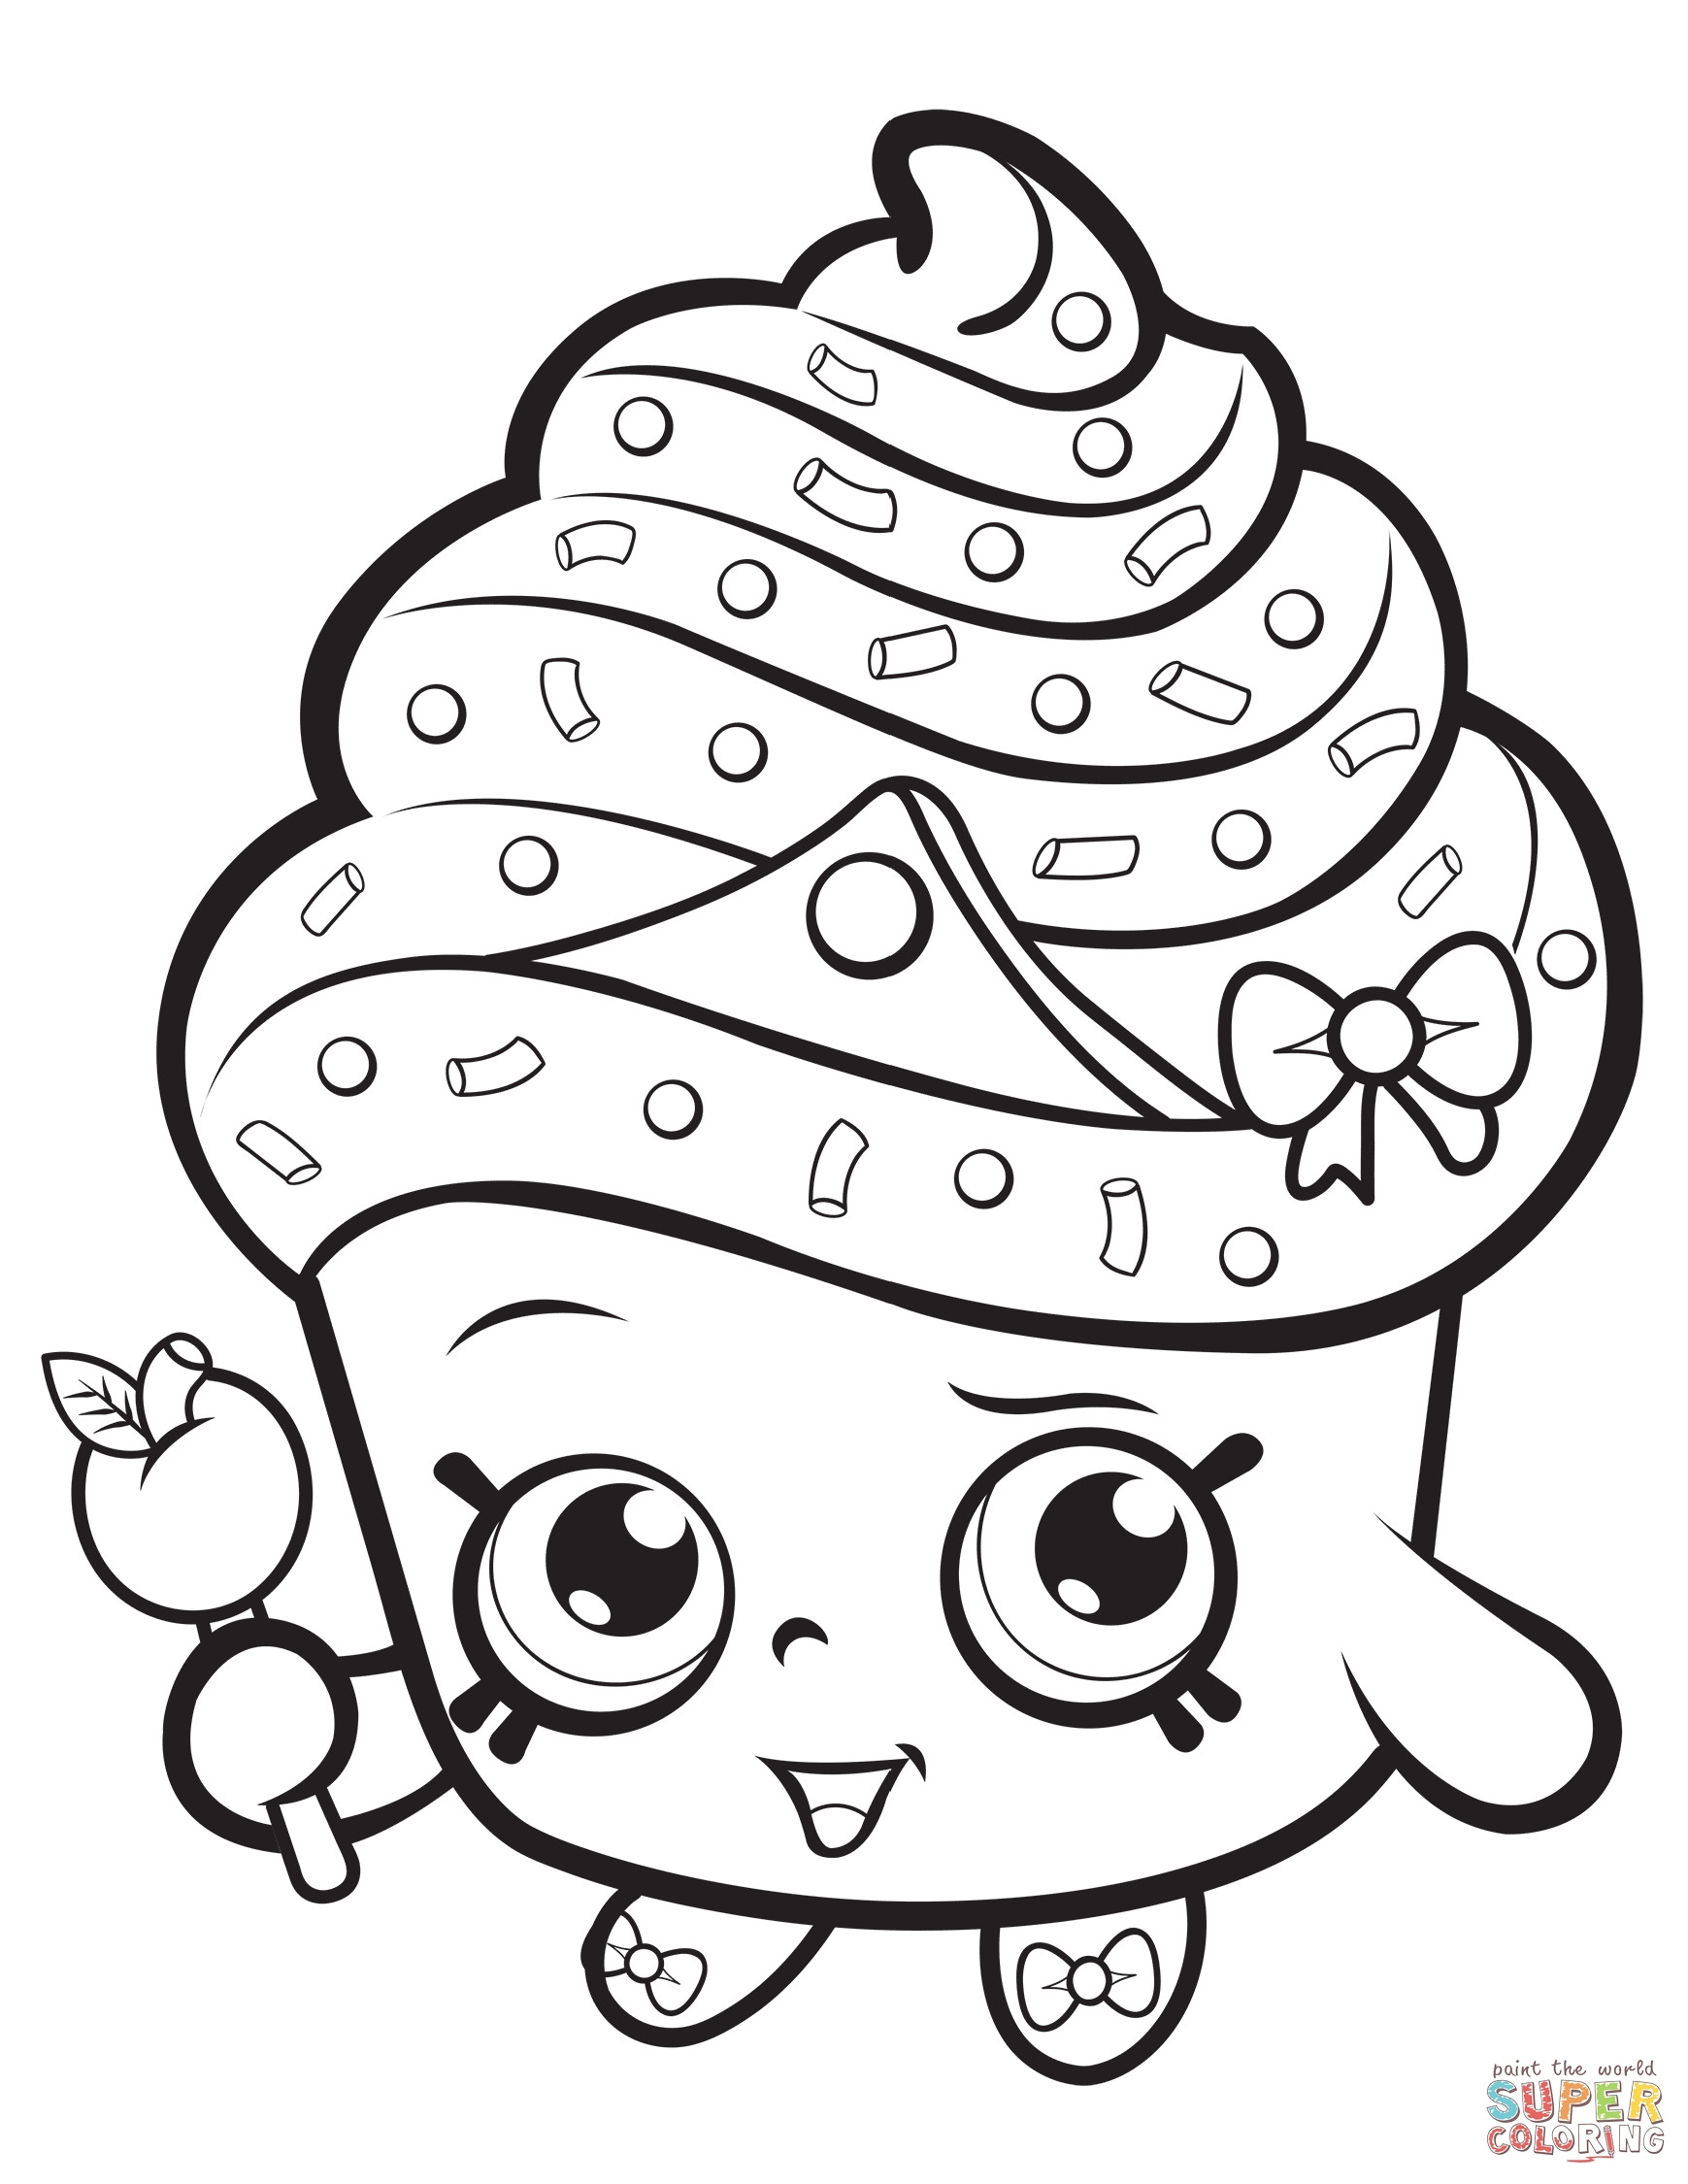 Coloring Pages For Girls Shopkins Apple  Coloring Pages For Girls Shopkins Apple Download 4